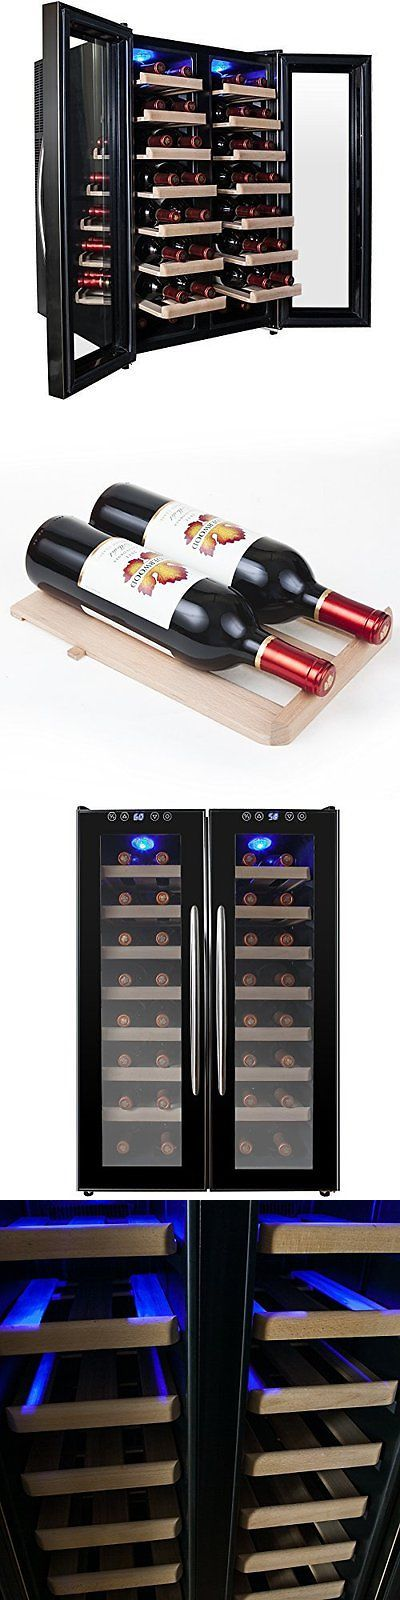 Wine Fridges and Cellars 177750: Akdyâ® 32 Bottle Dual Zone Thermoelectric Freestanding Wine Cooler Cellar Chille -> BUY IT NOW ONLY: $339.99 on eBay!